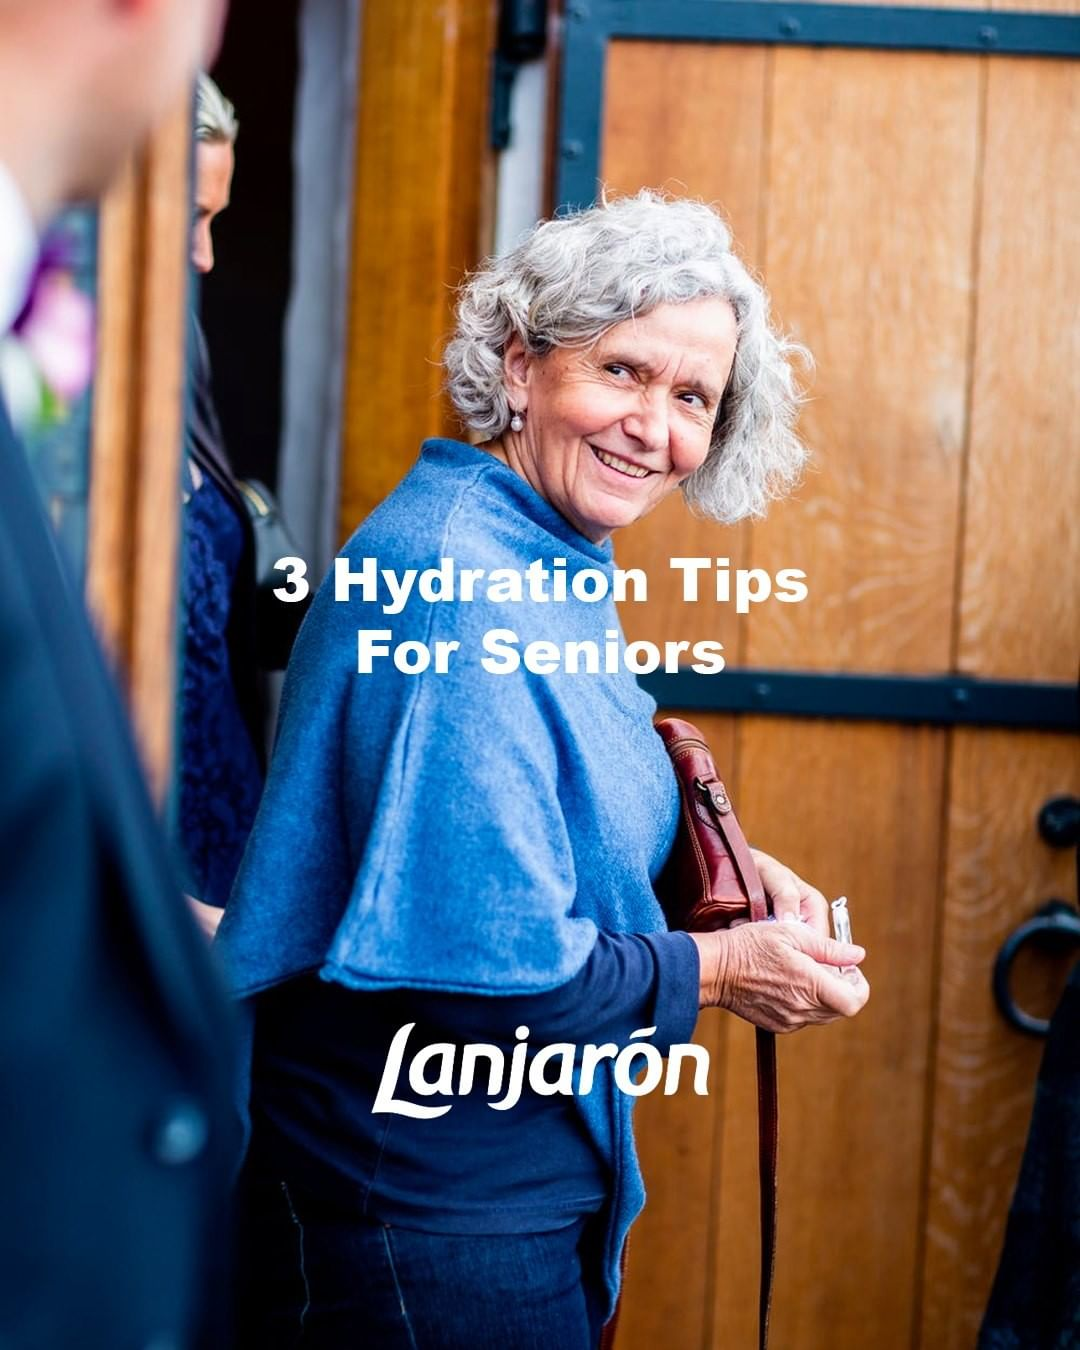 1. Old age can diminish the sensation for thirst. By the time senior feel that they need to drink water, they will be far too dehydrated and their health is negatively affected.